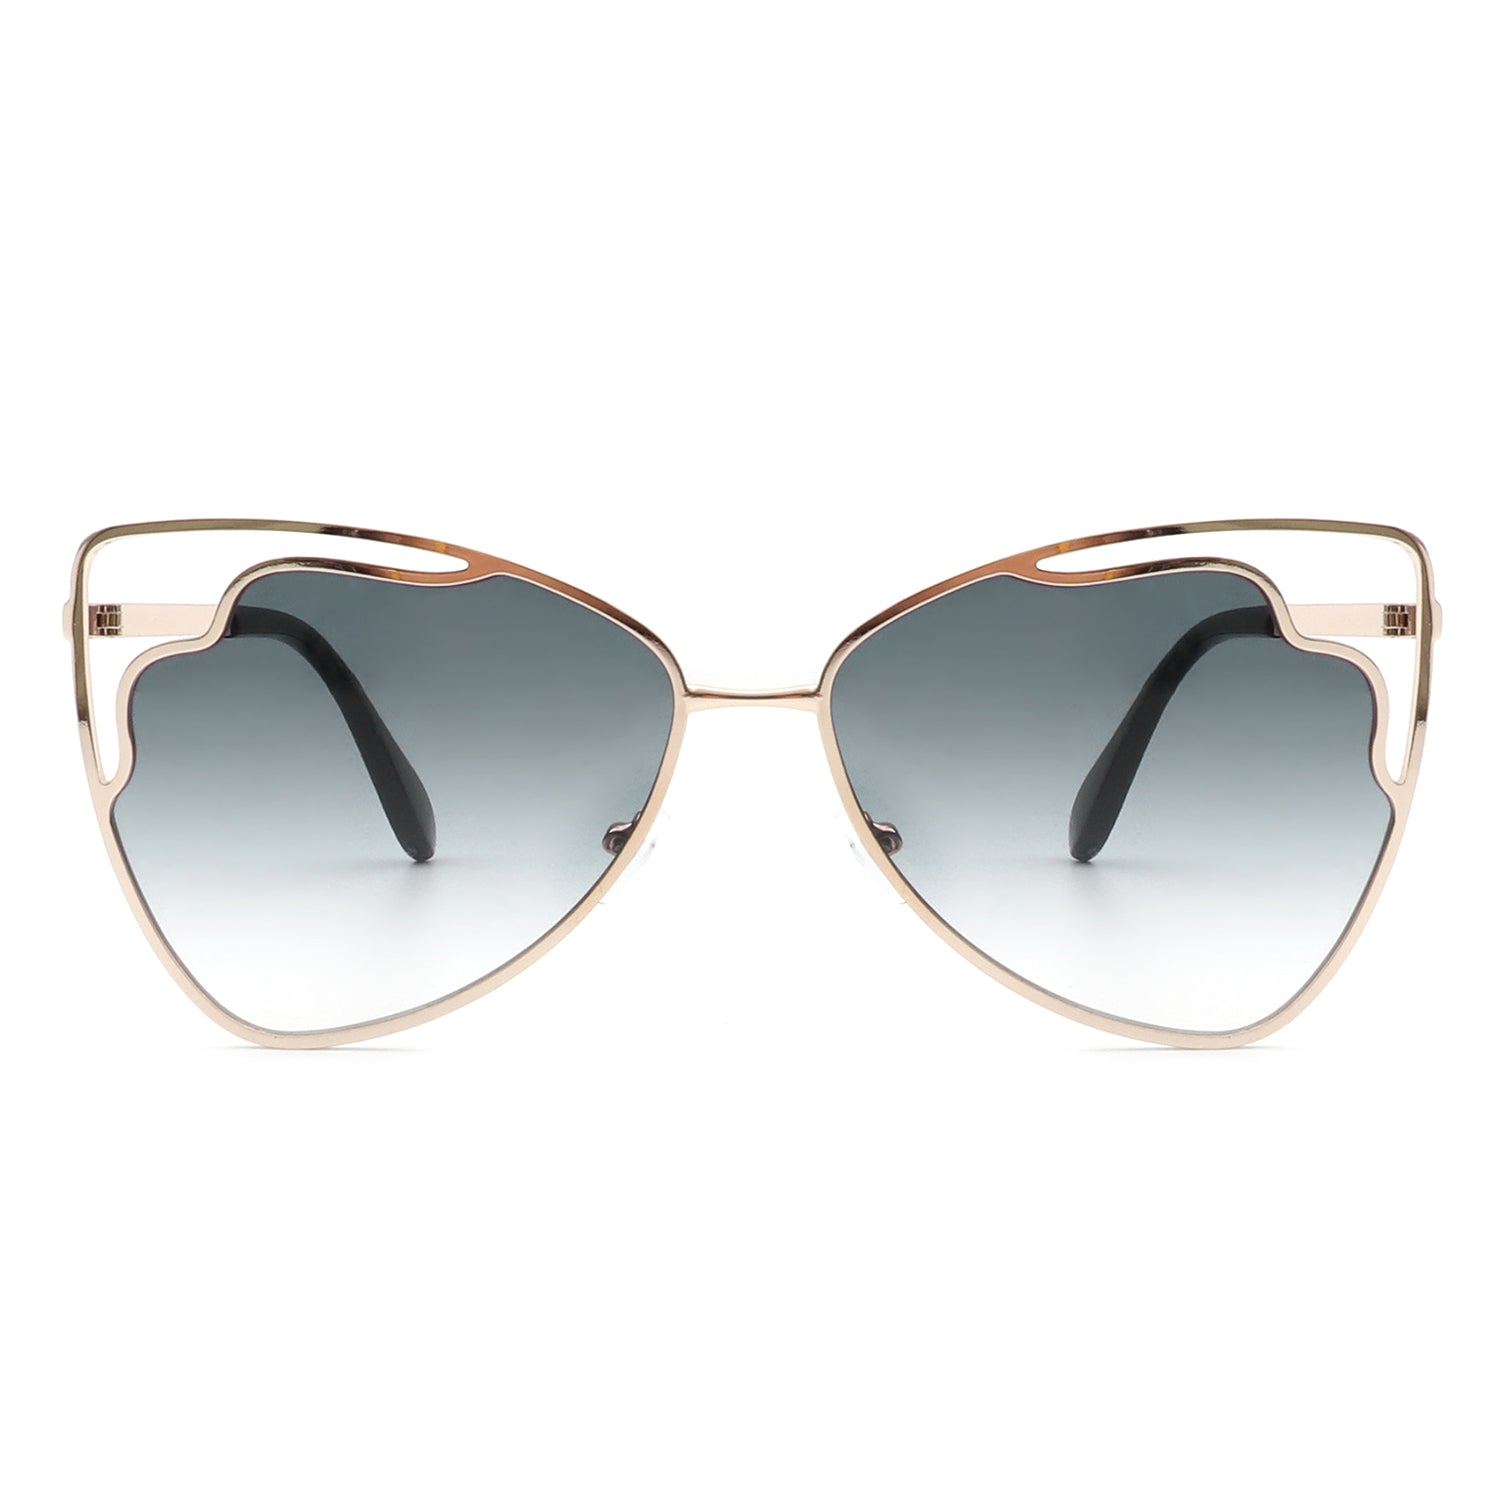 HJ3005 - Women Cat Eye Triangle Metal Fashion Sunglasses